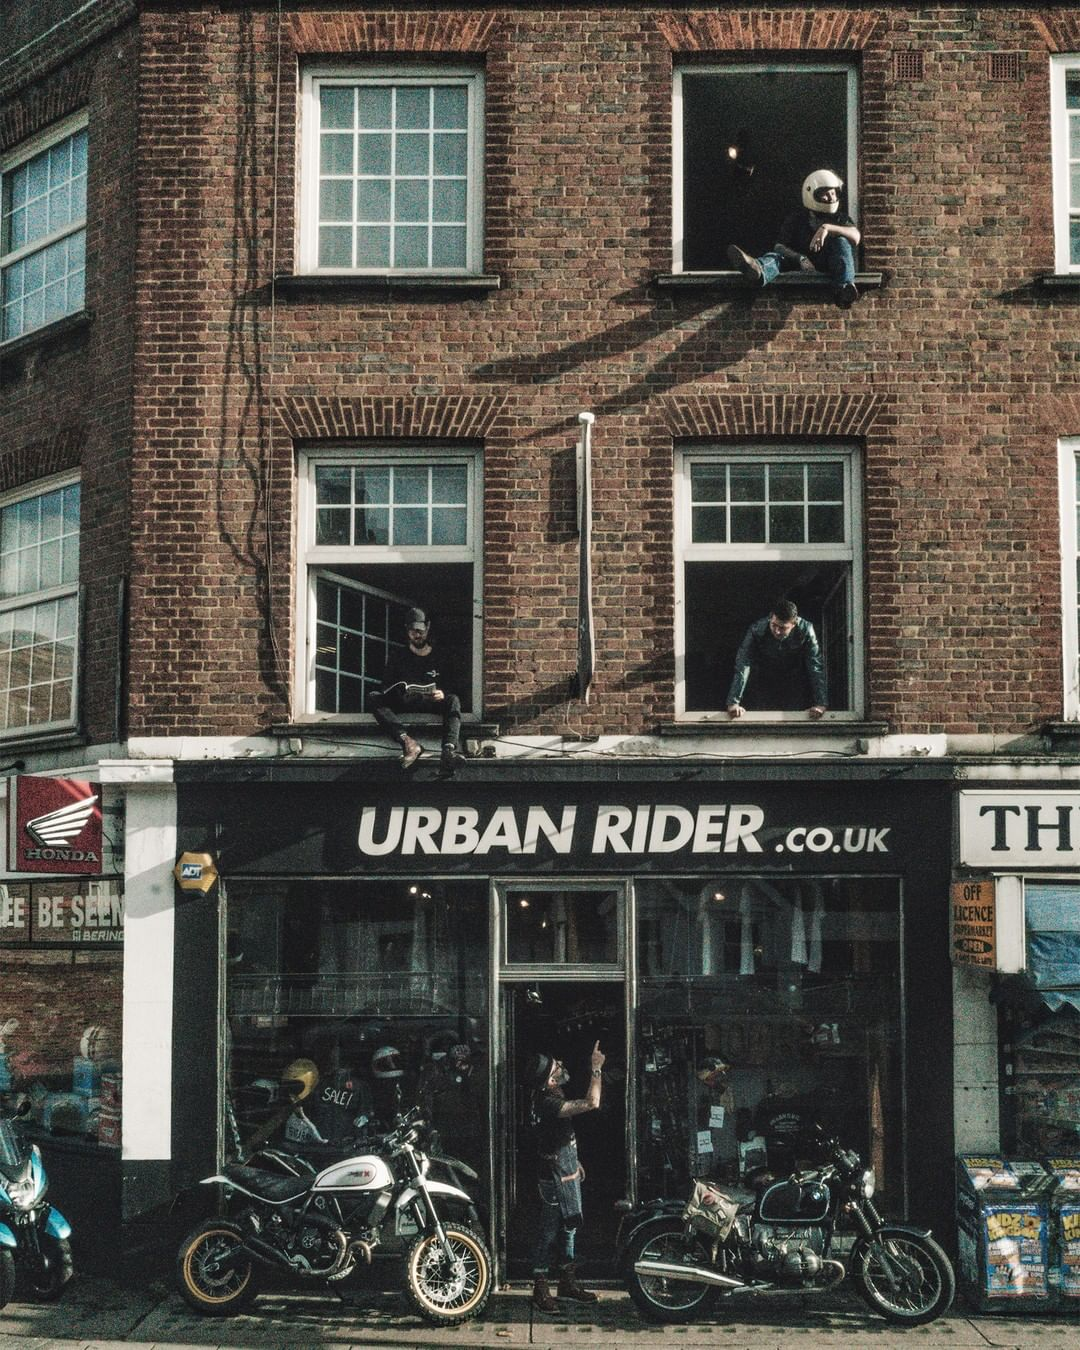 The Urban Rider New Kings Road shop